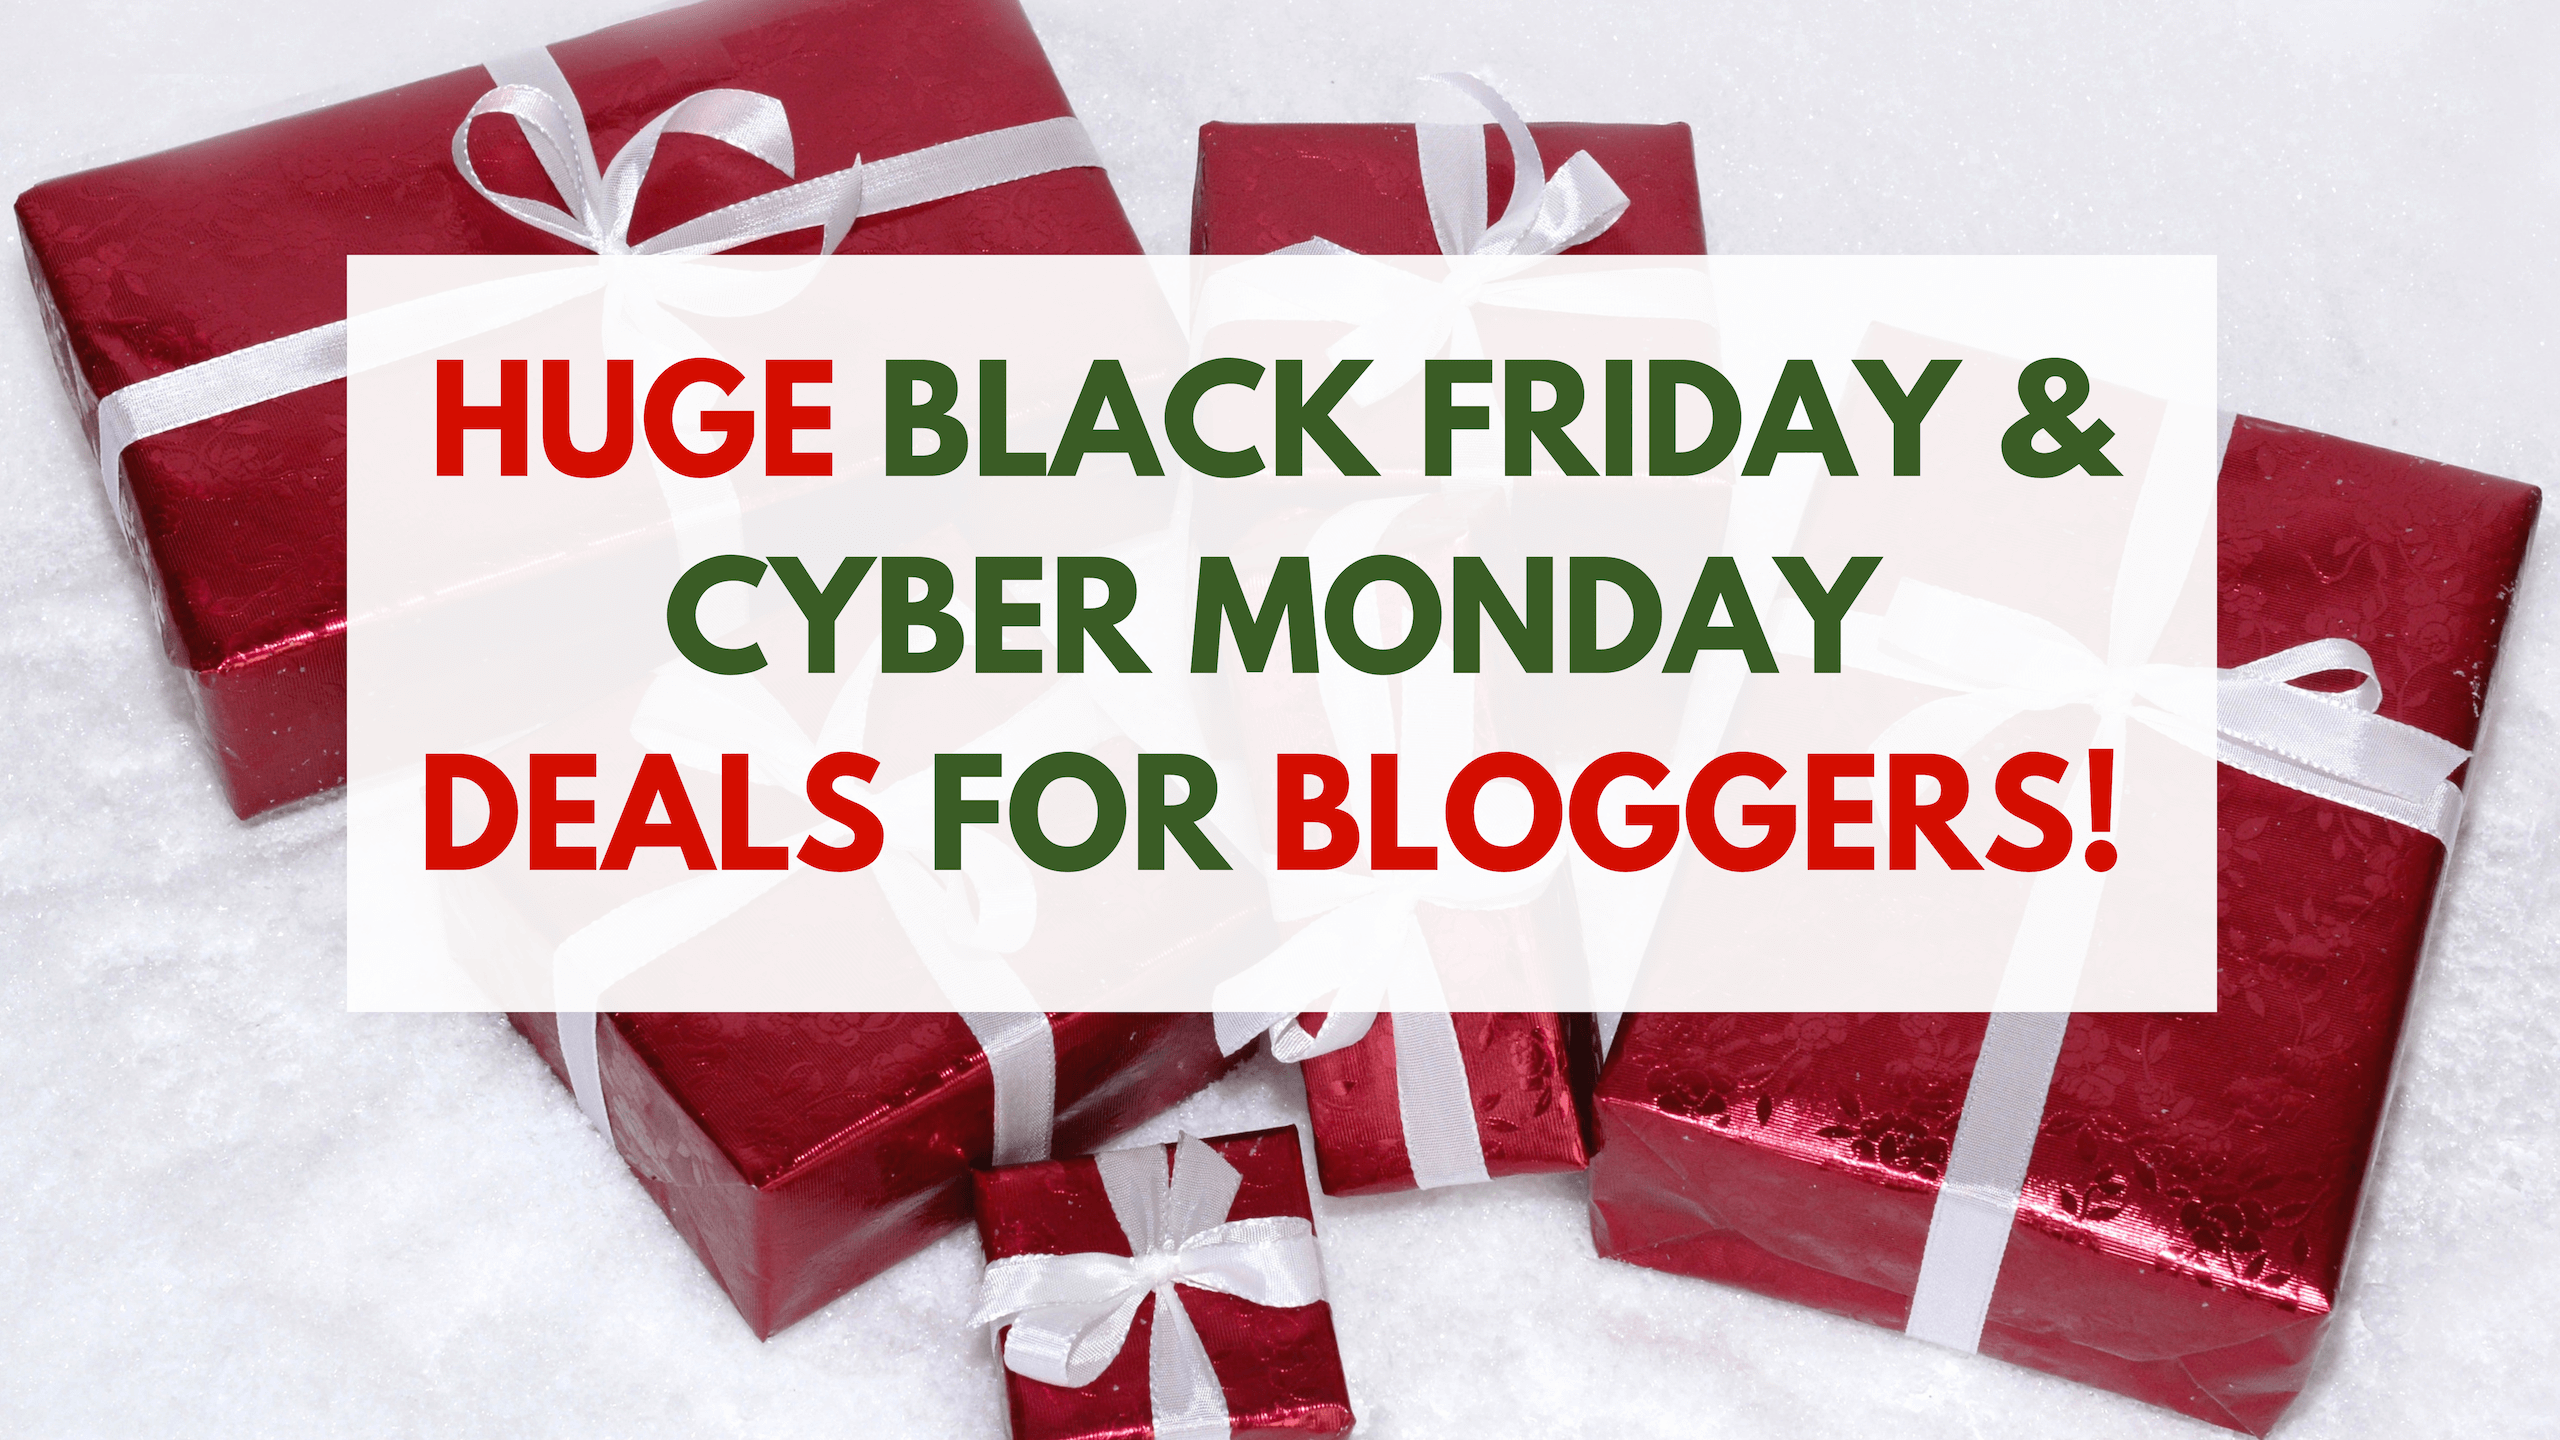 Huge Black Friday and Cyber Monday Deals for Bloggers